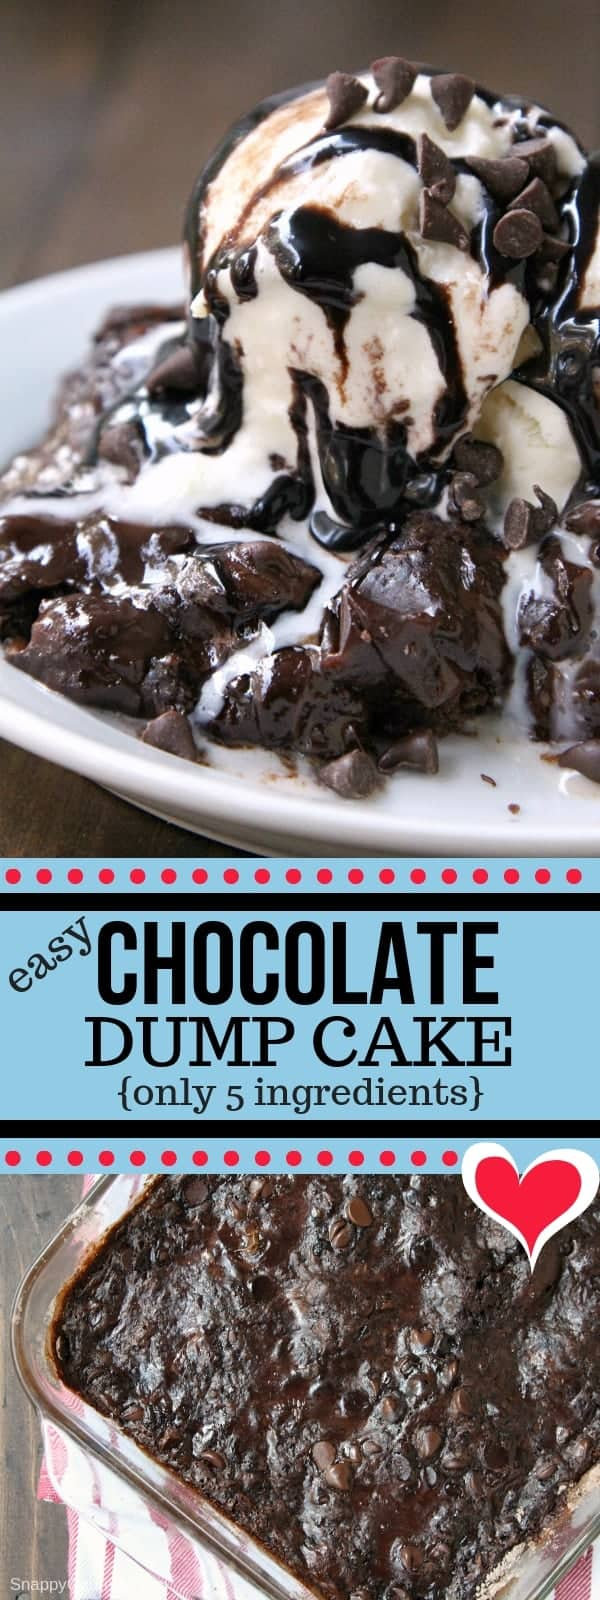 chocolate dump cake pin